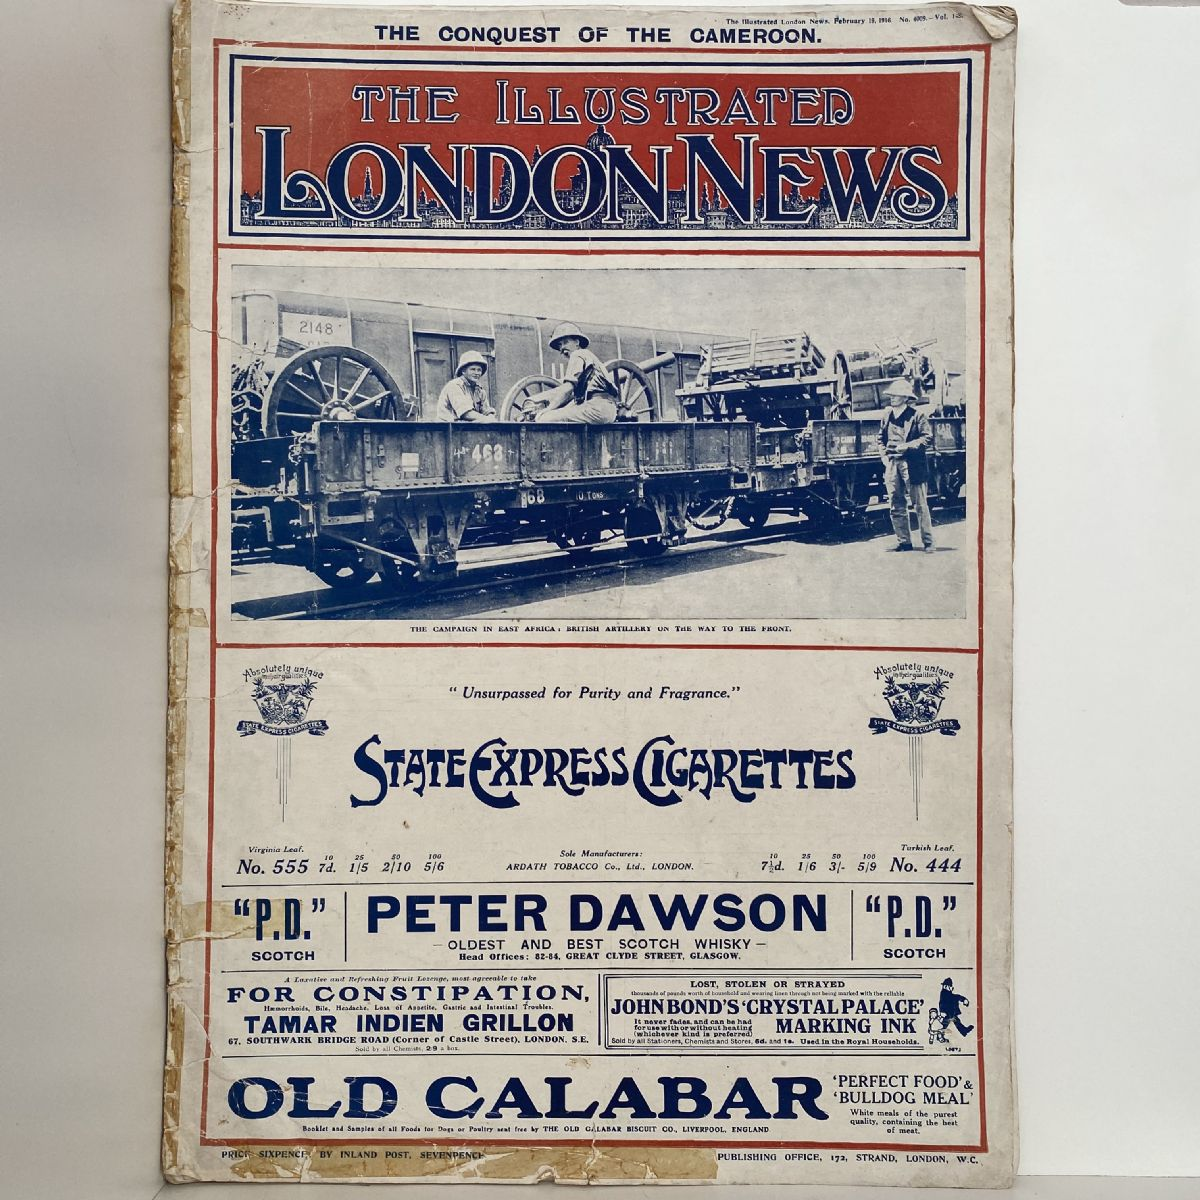 ILLUSTRATED LONDON NEWS The Conquest of the Cameroon. Feb 19, 1916. No. 4009